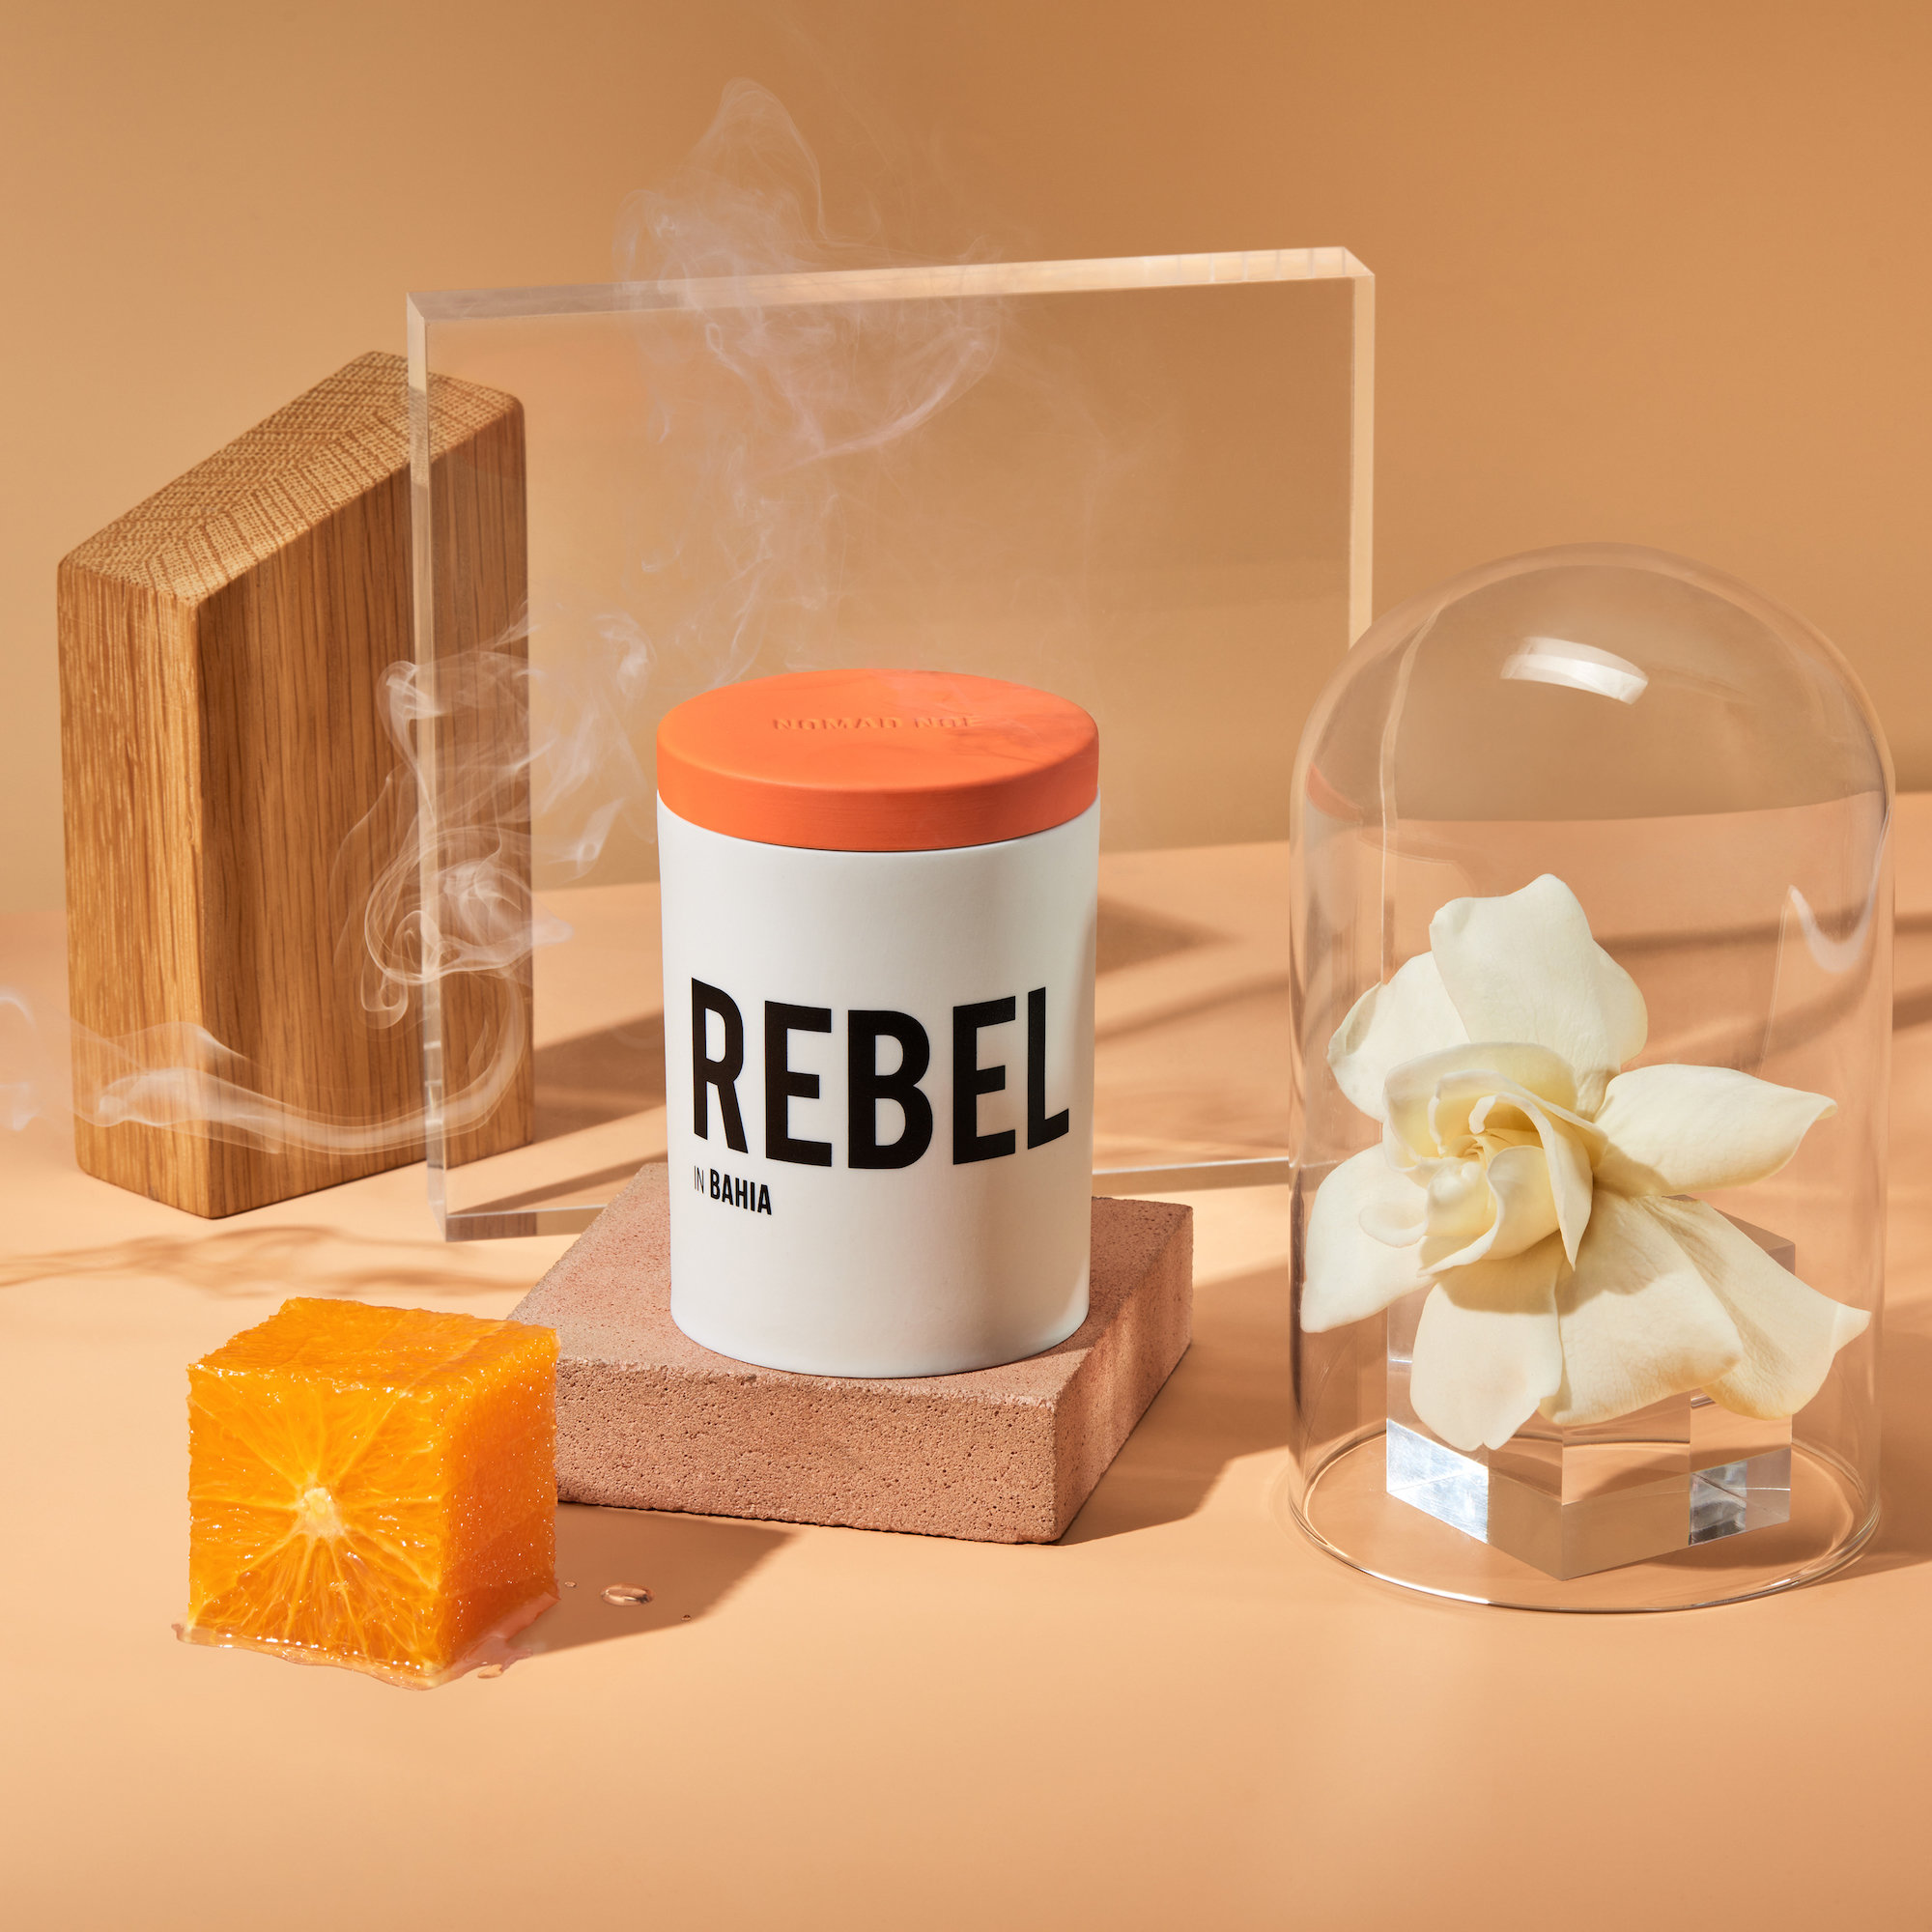 Alternate product image for Rebel In Bahia - Neroli & Incense Candle shown with the description.